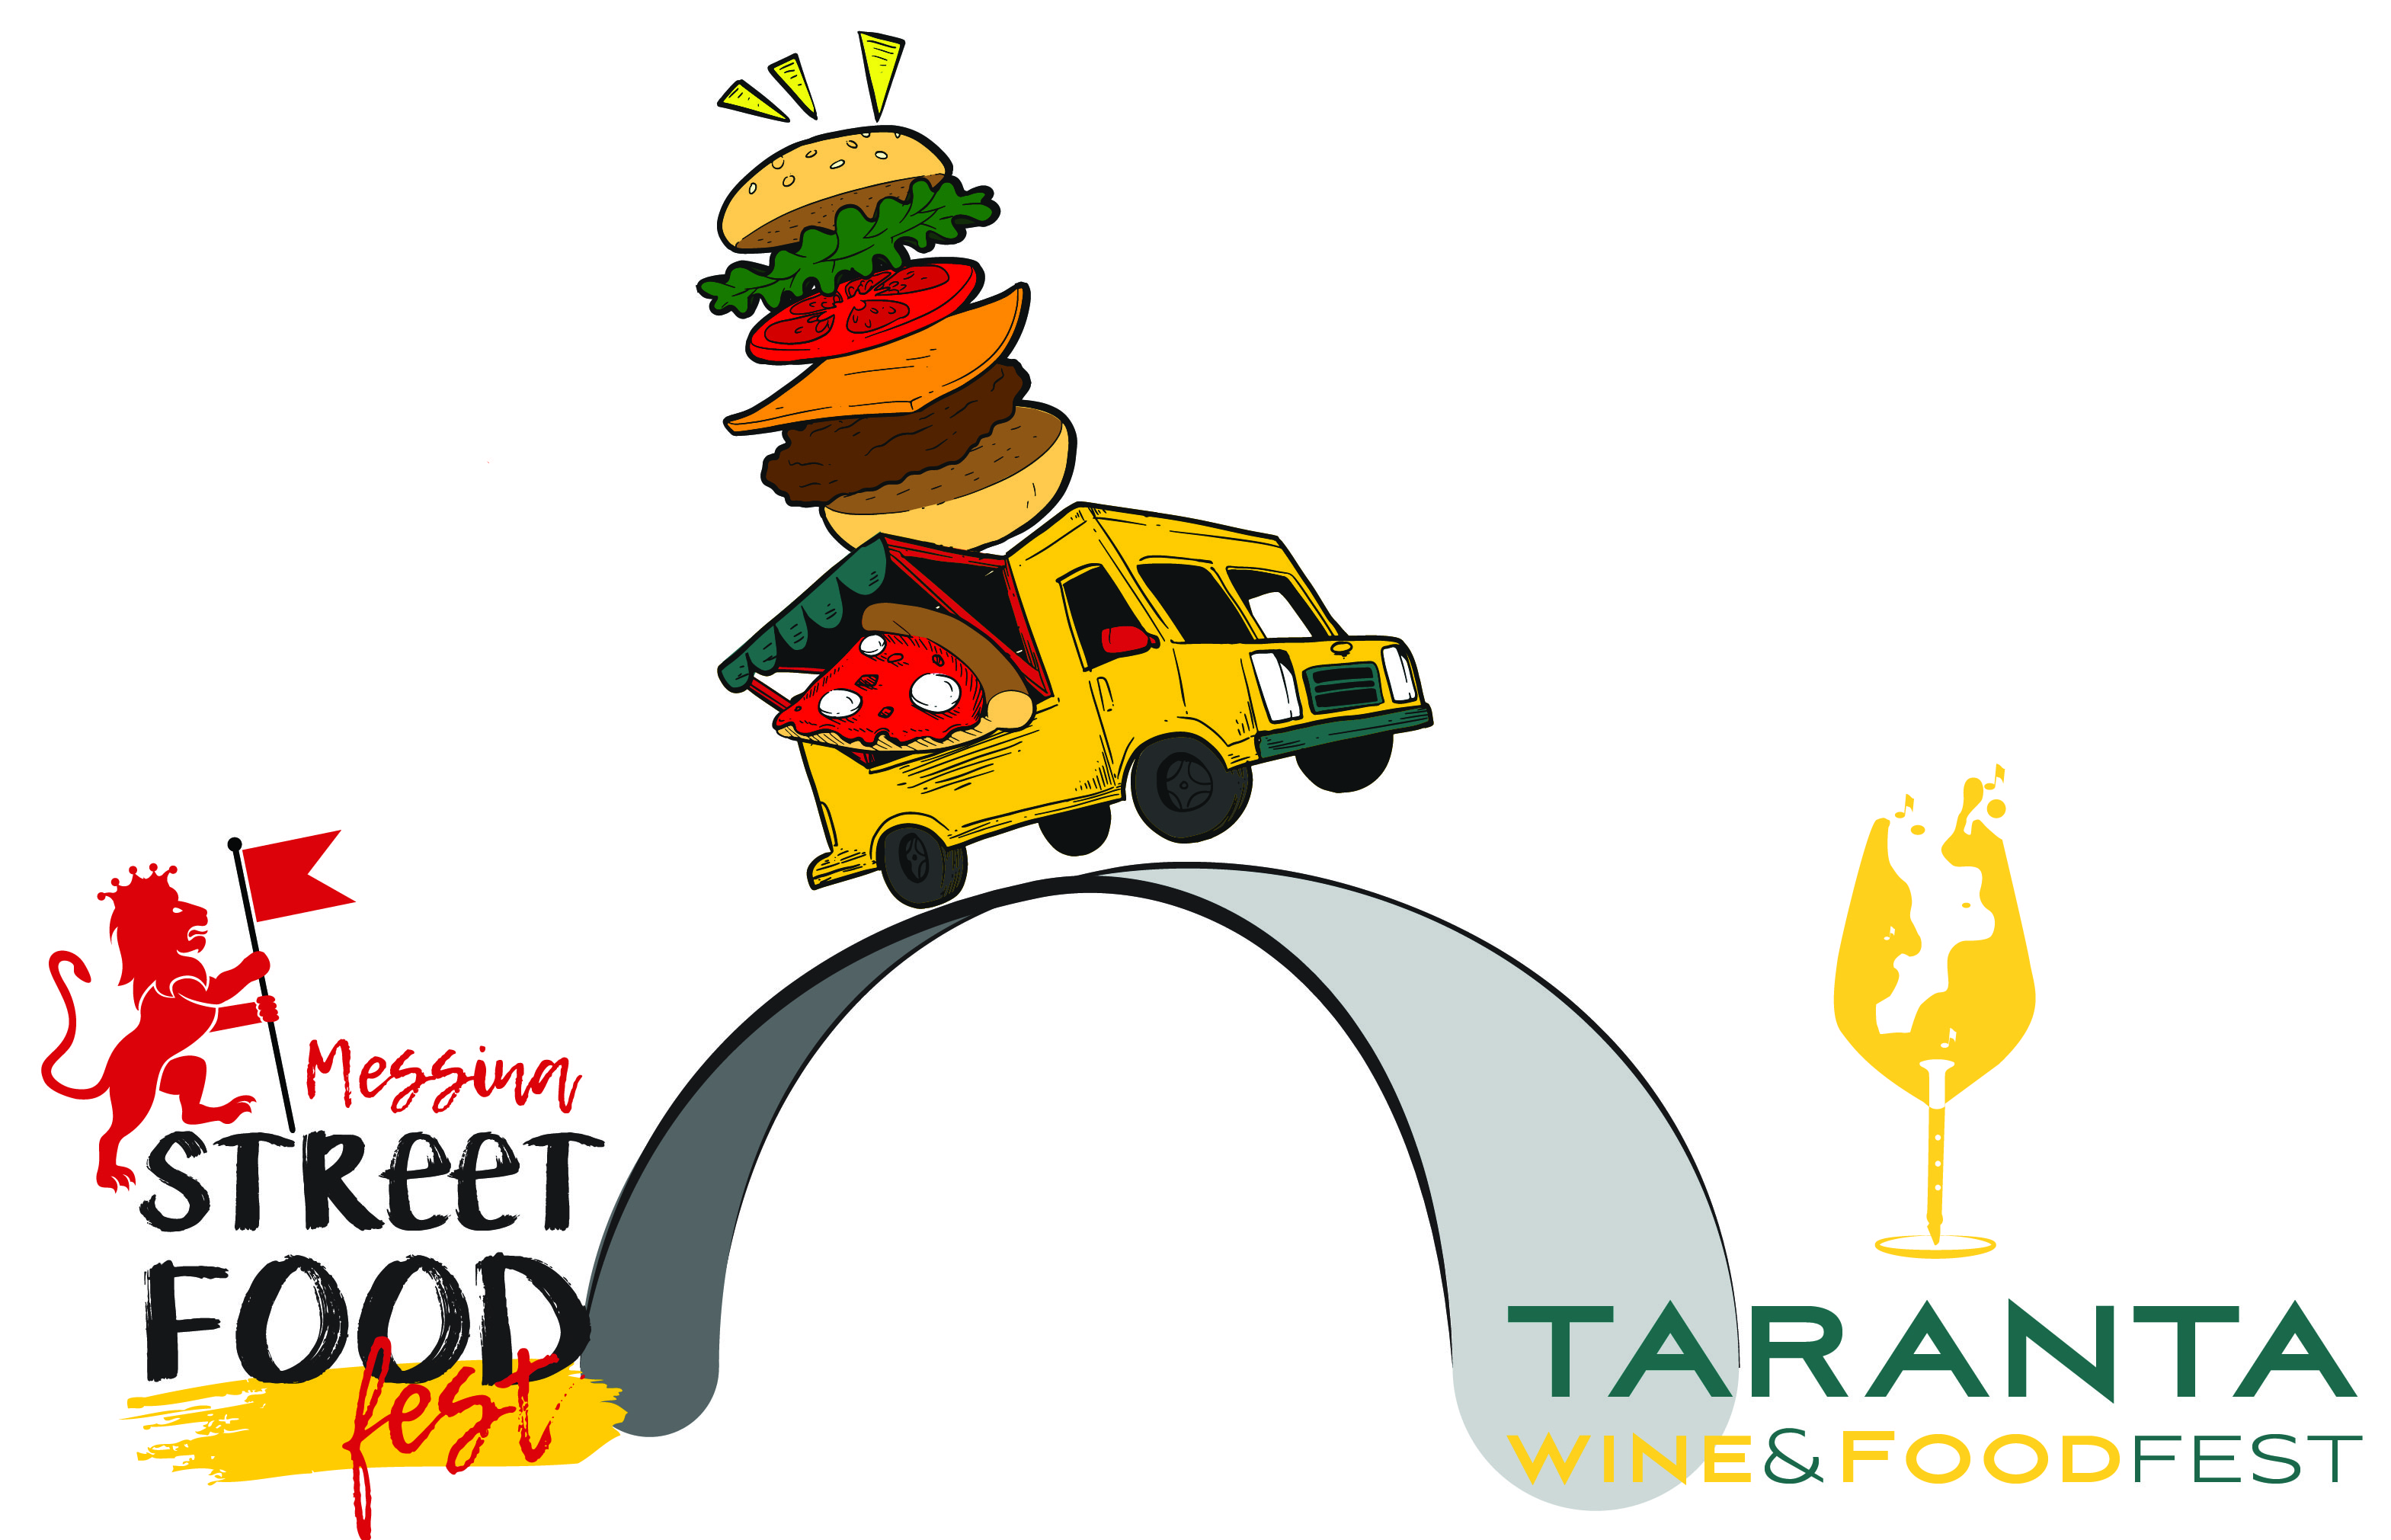 taranta - messina street food - confesercenti